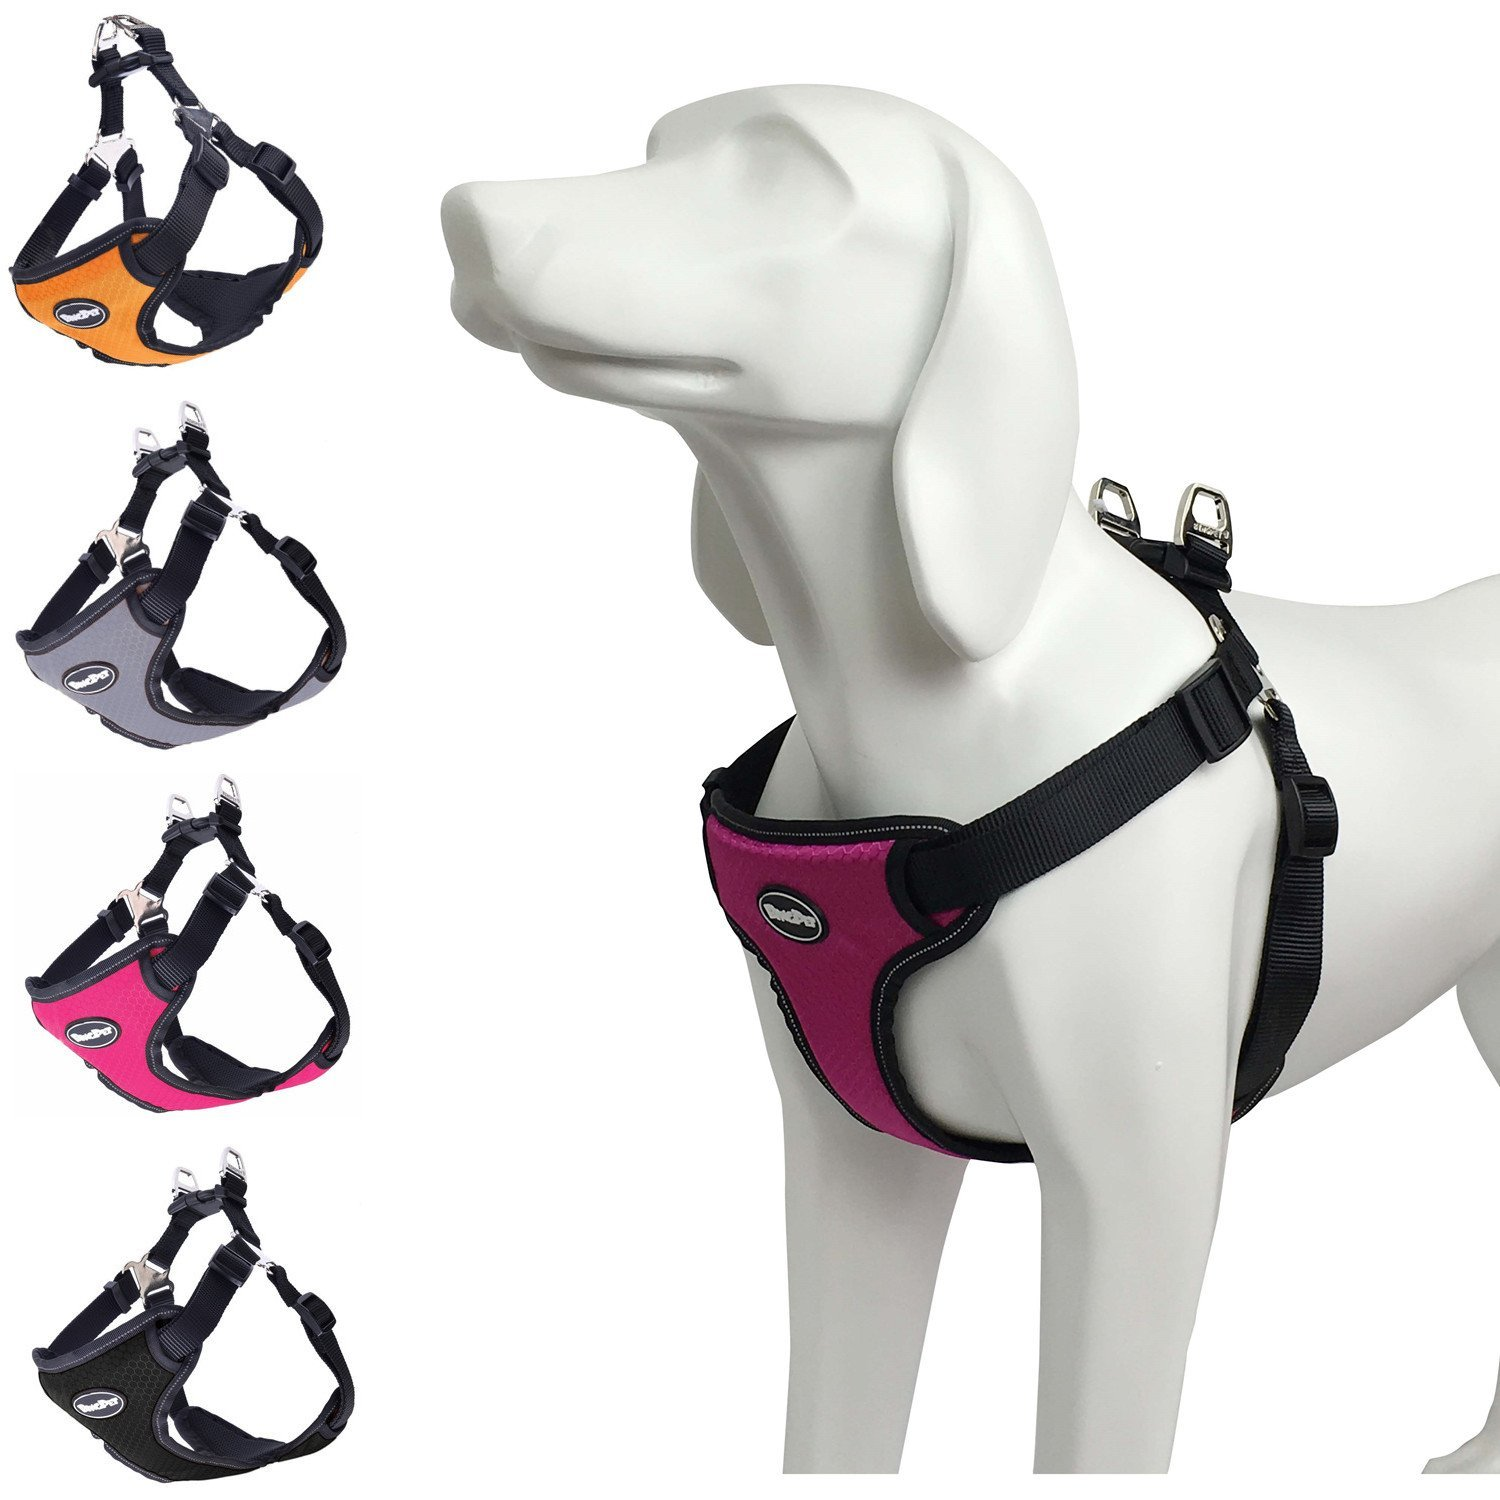 BINGPET No Pull Dog Harness Reflective for Pet Puppy Freedom Walking Hot Pink L